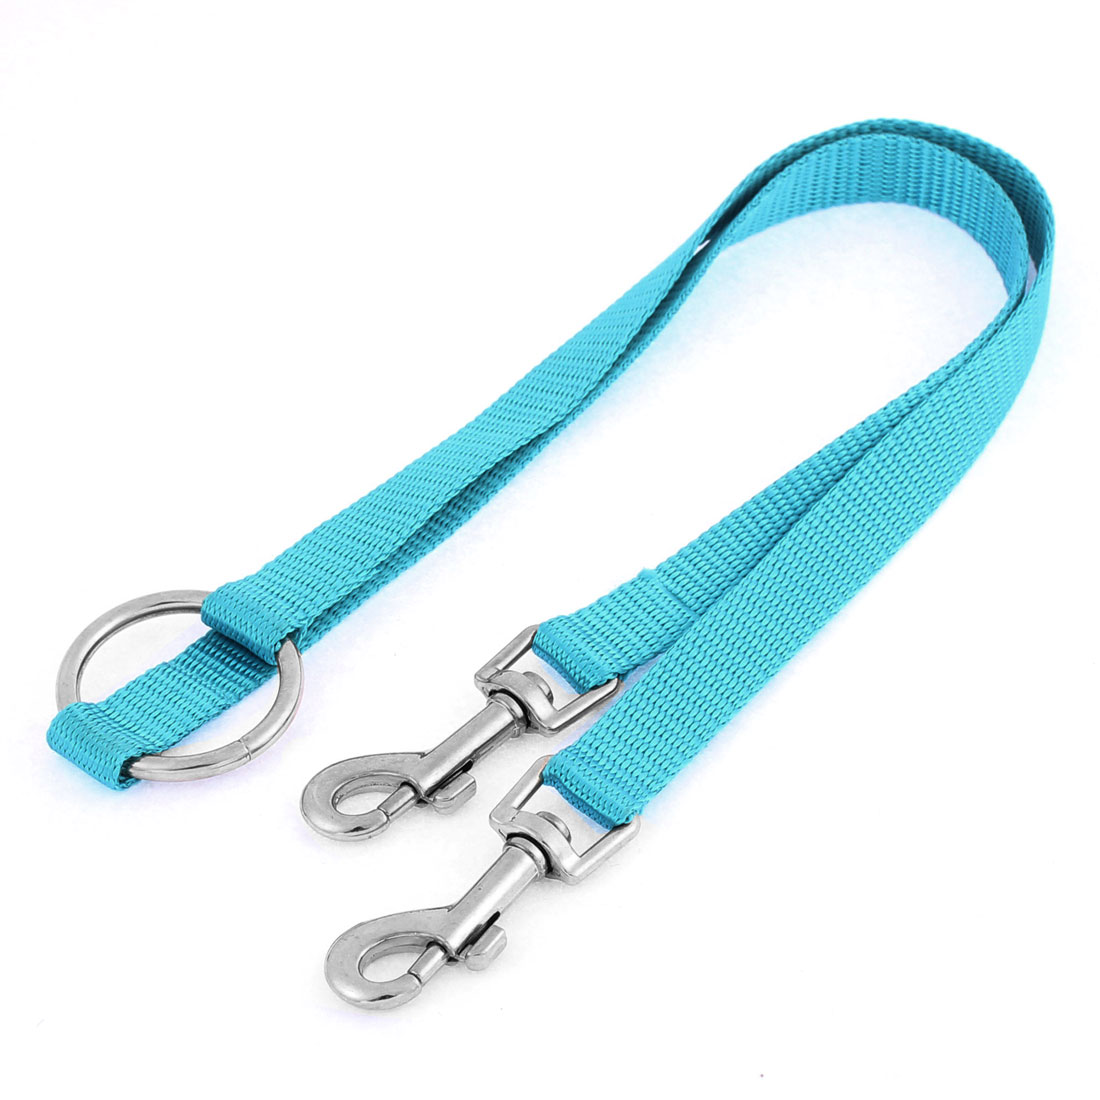 Pet Dog Puppy Training Walk 80cm Long Dual Head Nylon Leash Rope Blue